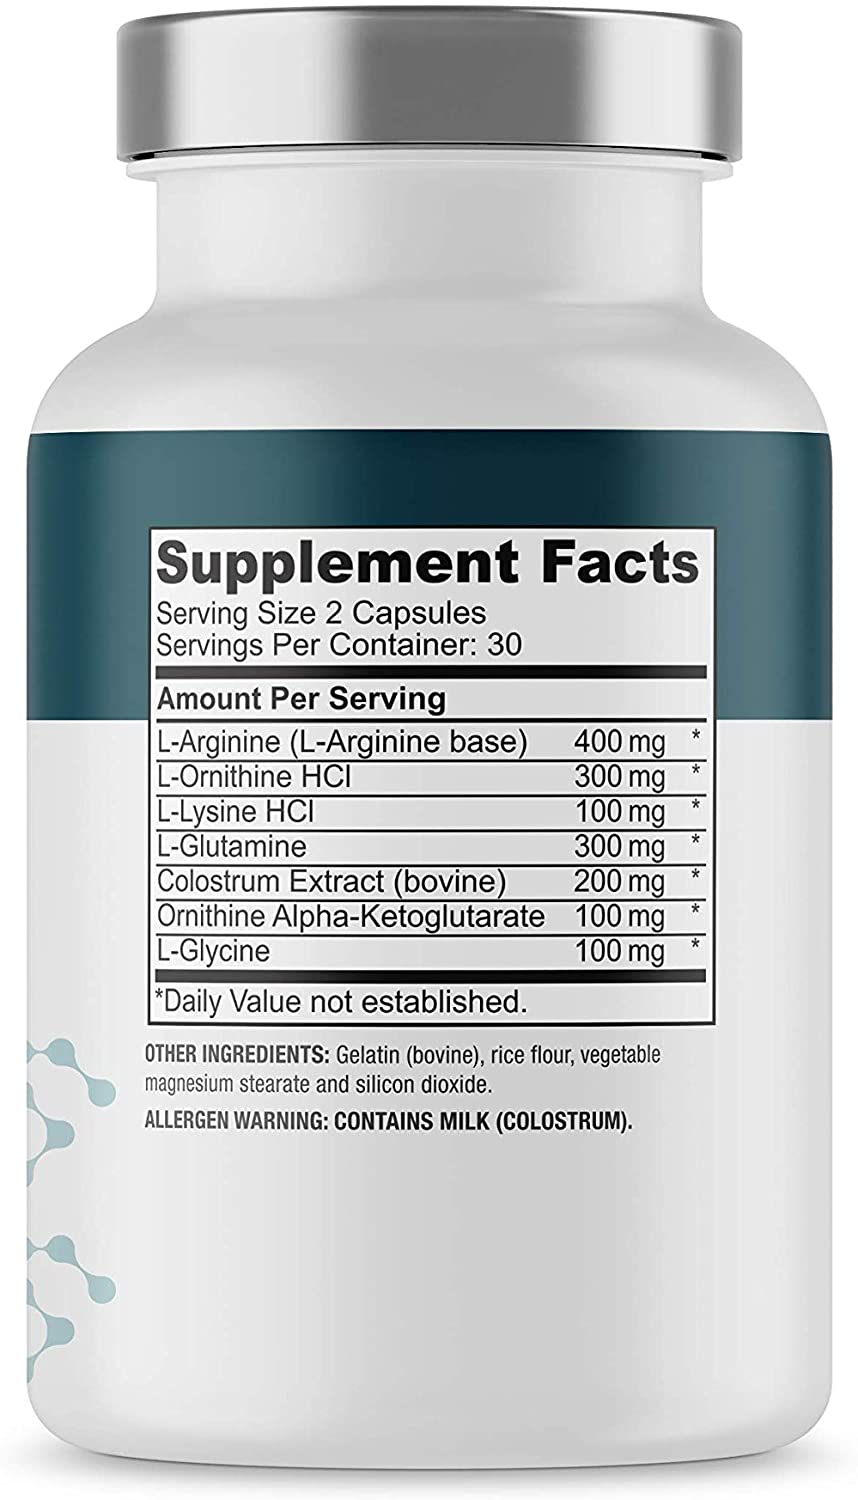 ViMulti Anti-Aging Natural Amino Acid Supplement - 60 Tablet